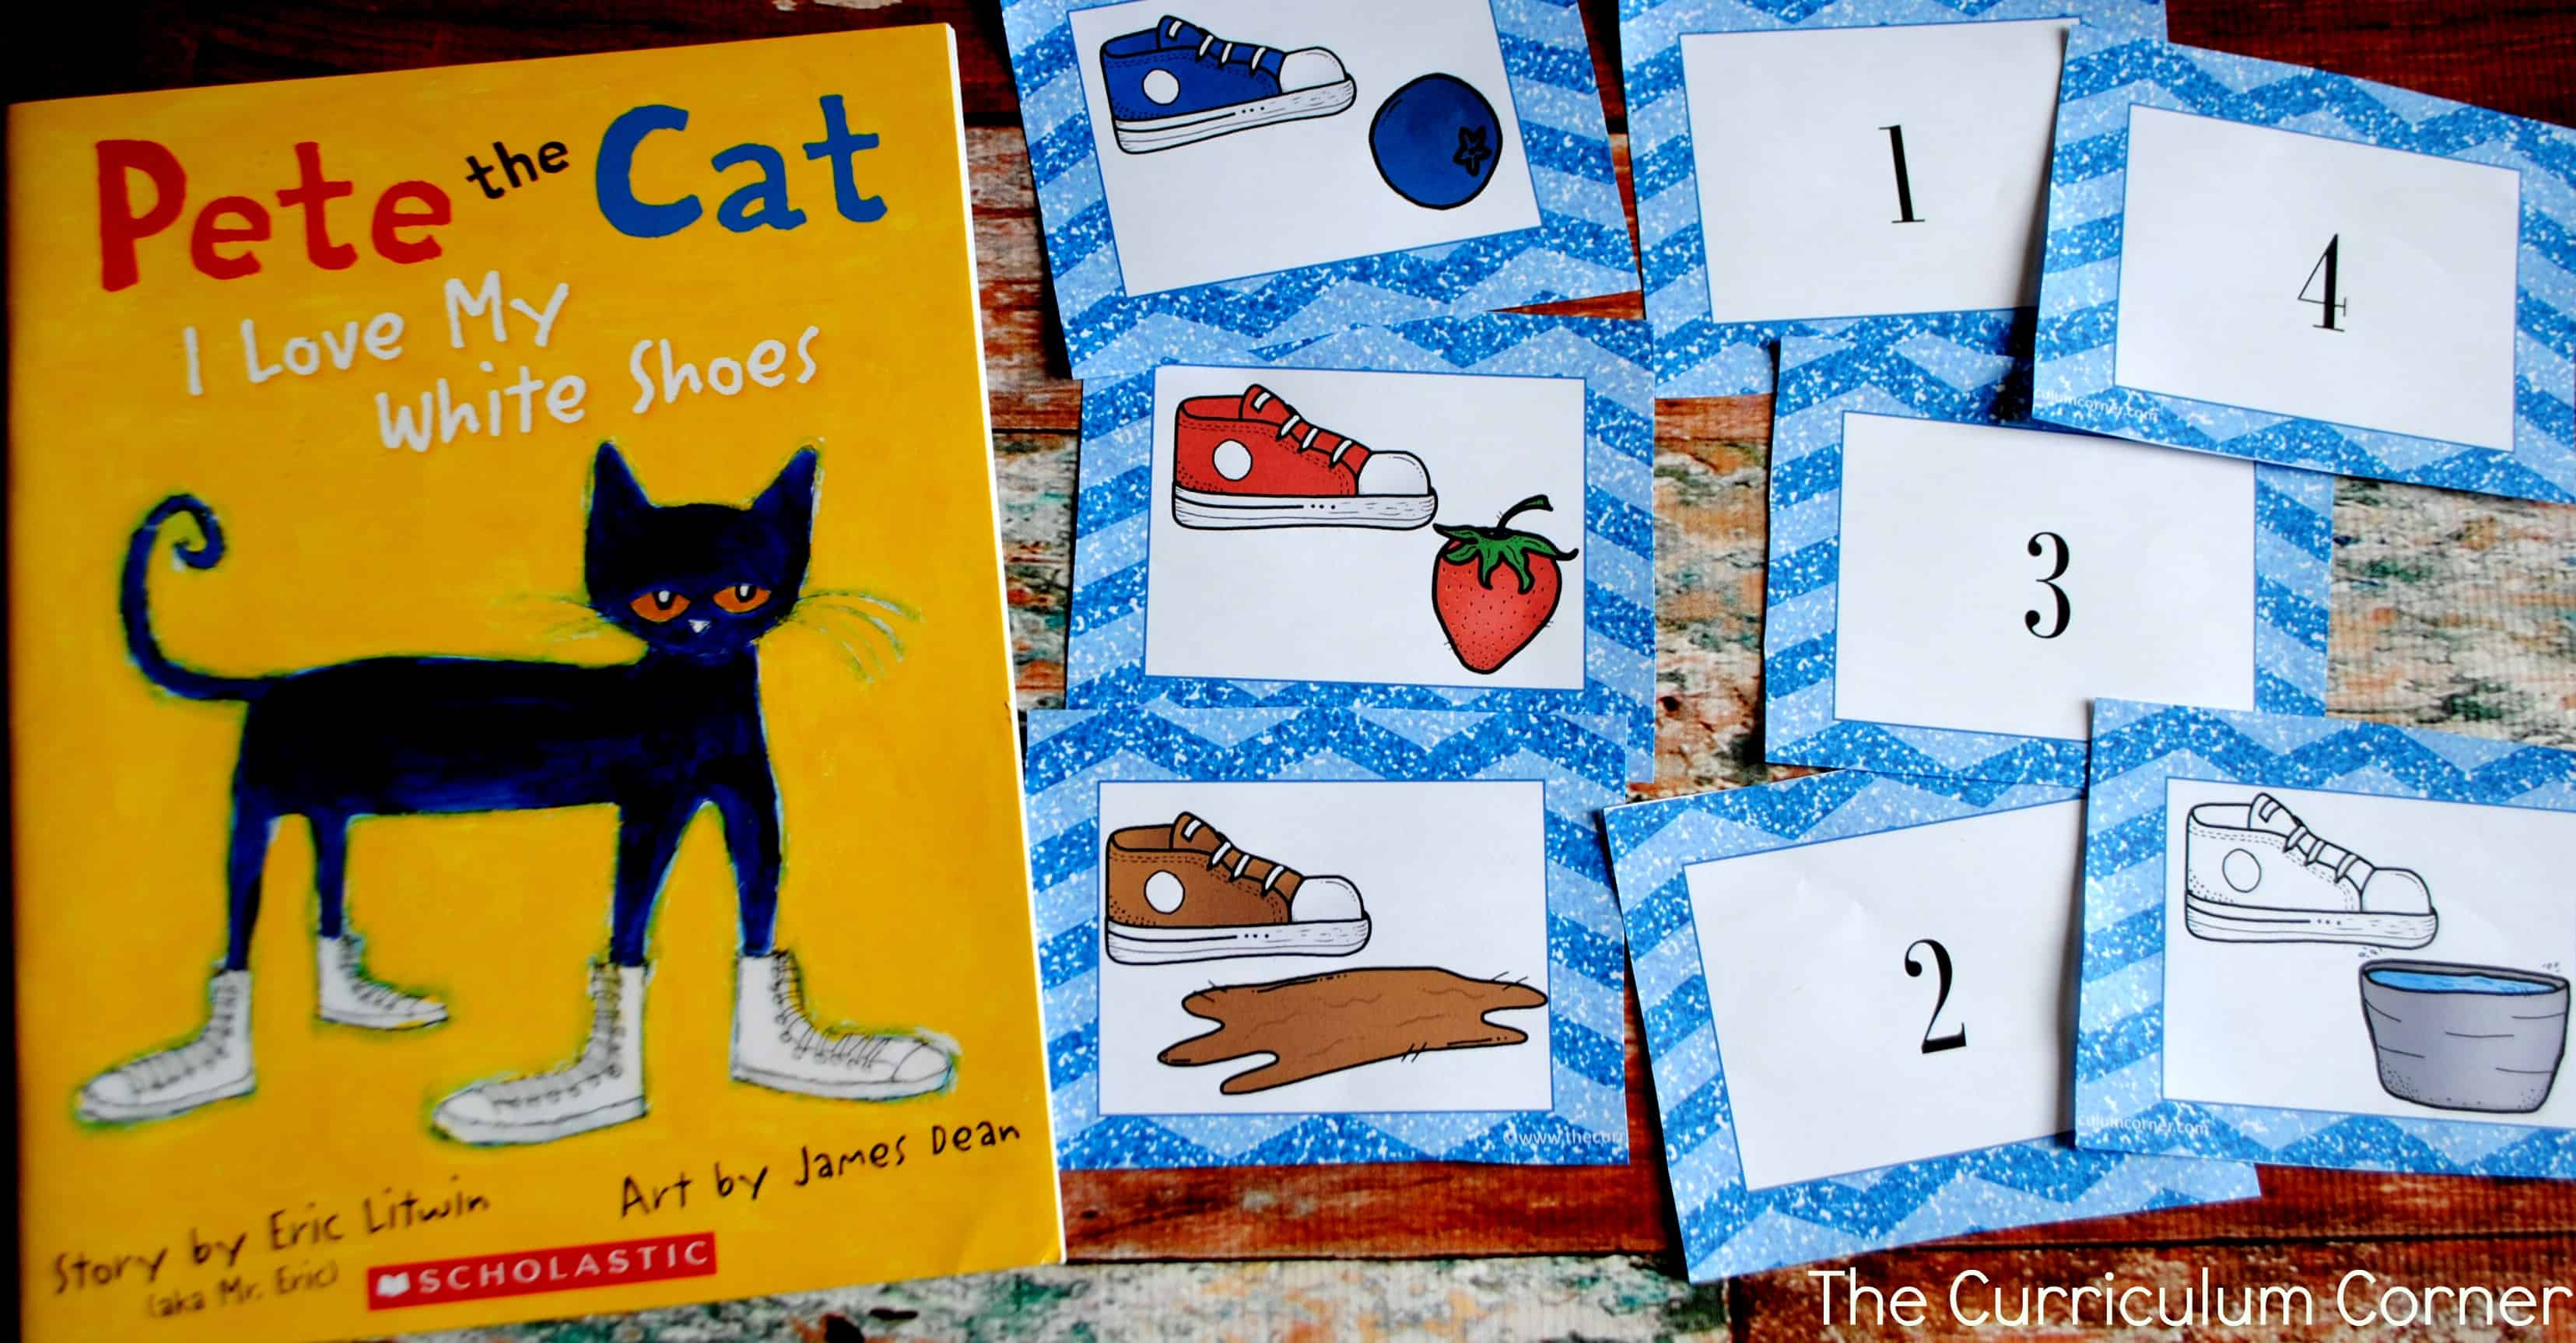 Pete The Cat Resources